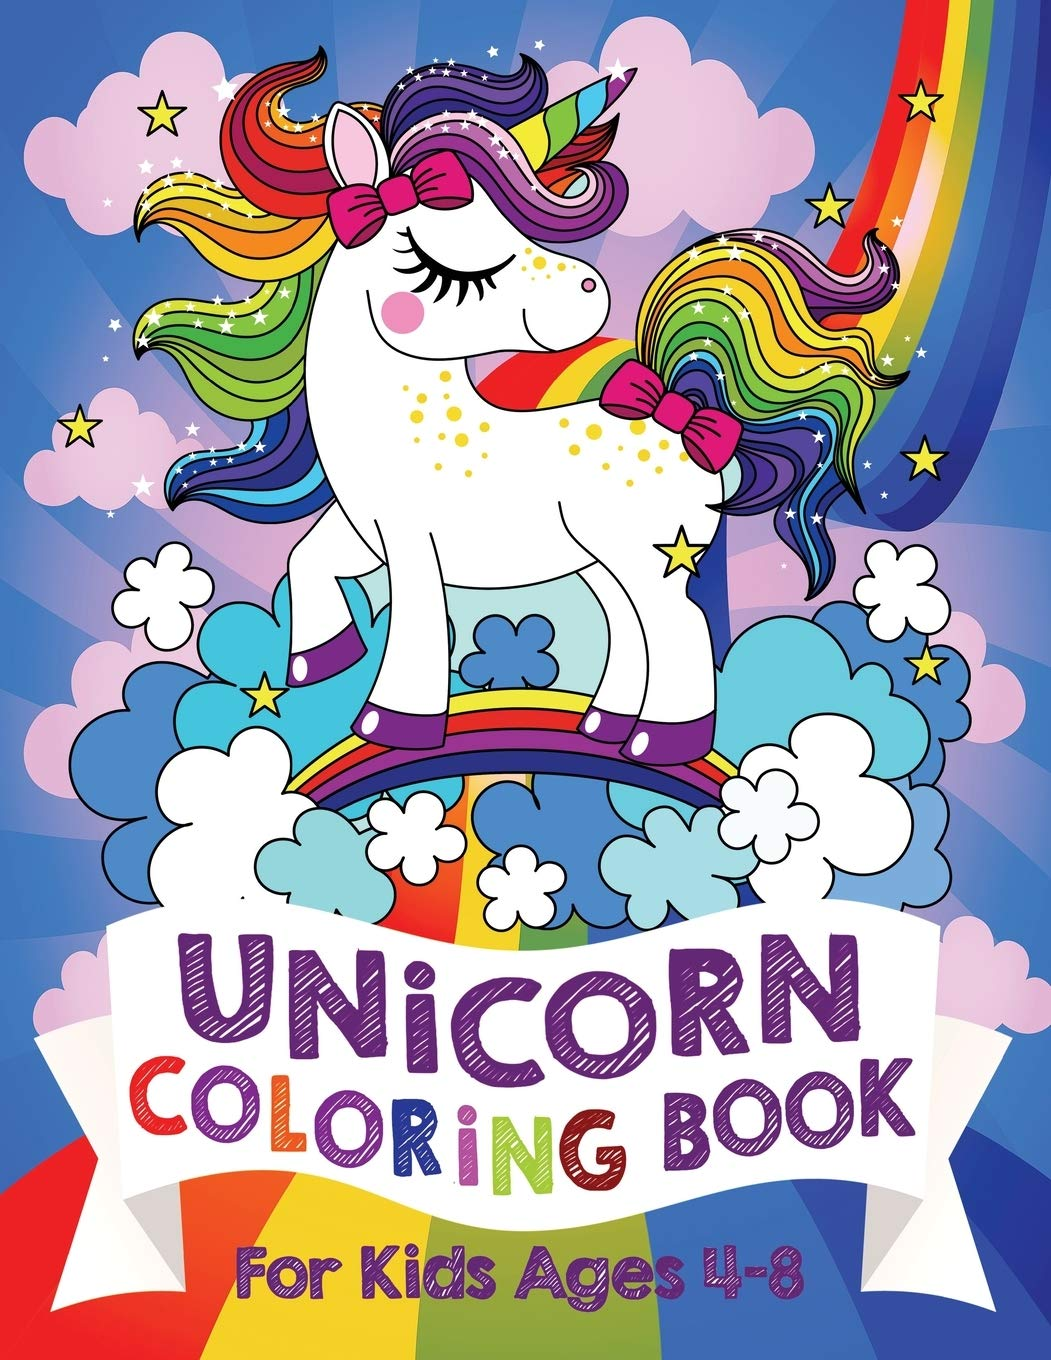 Unicorn Coloring Book For Kids Ages 4 8 Us Edition Silly Bear Coloring Books Bear Silly 9781999896966 Amazon Com Books